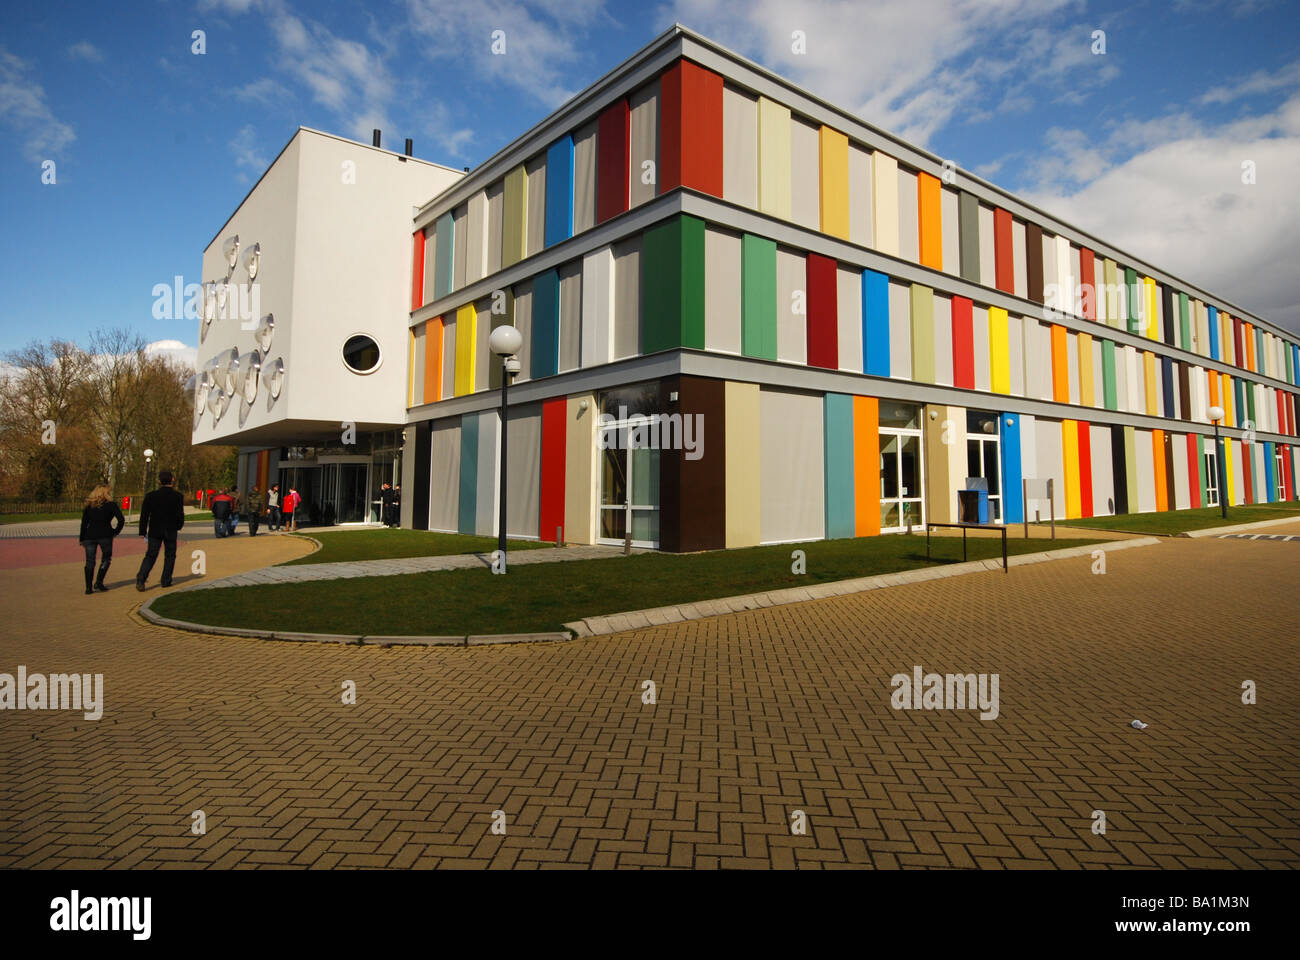 colourful school building of Niekee educational centre Roermond Netherlands - Stock Image